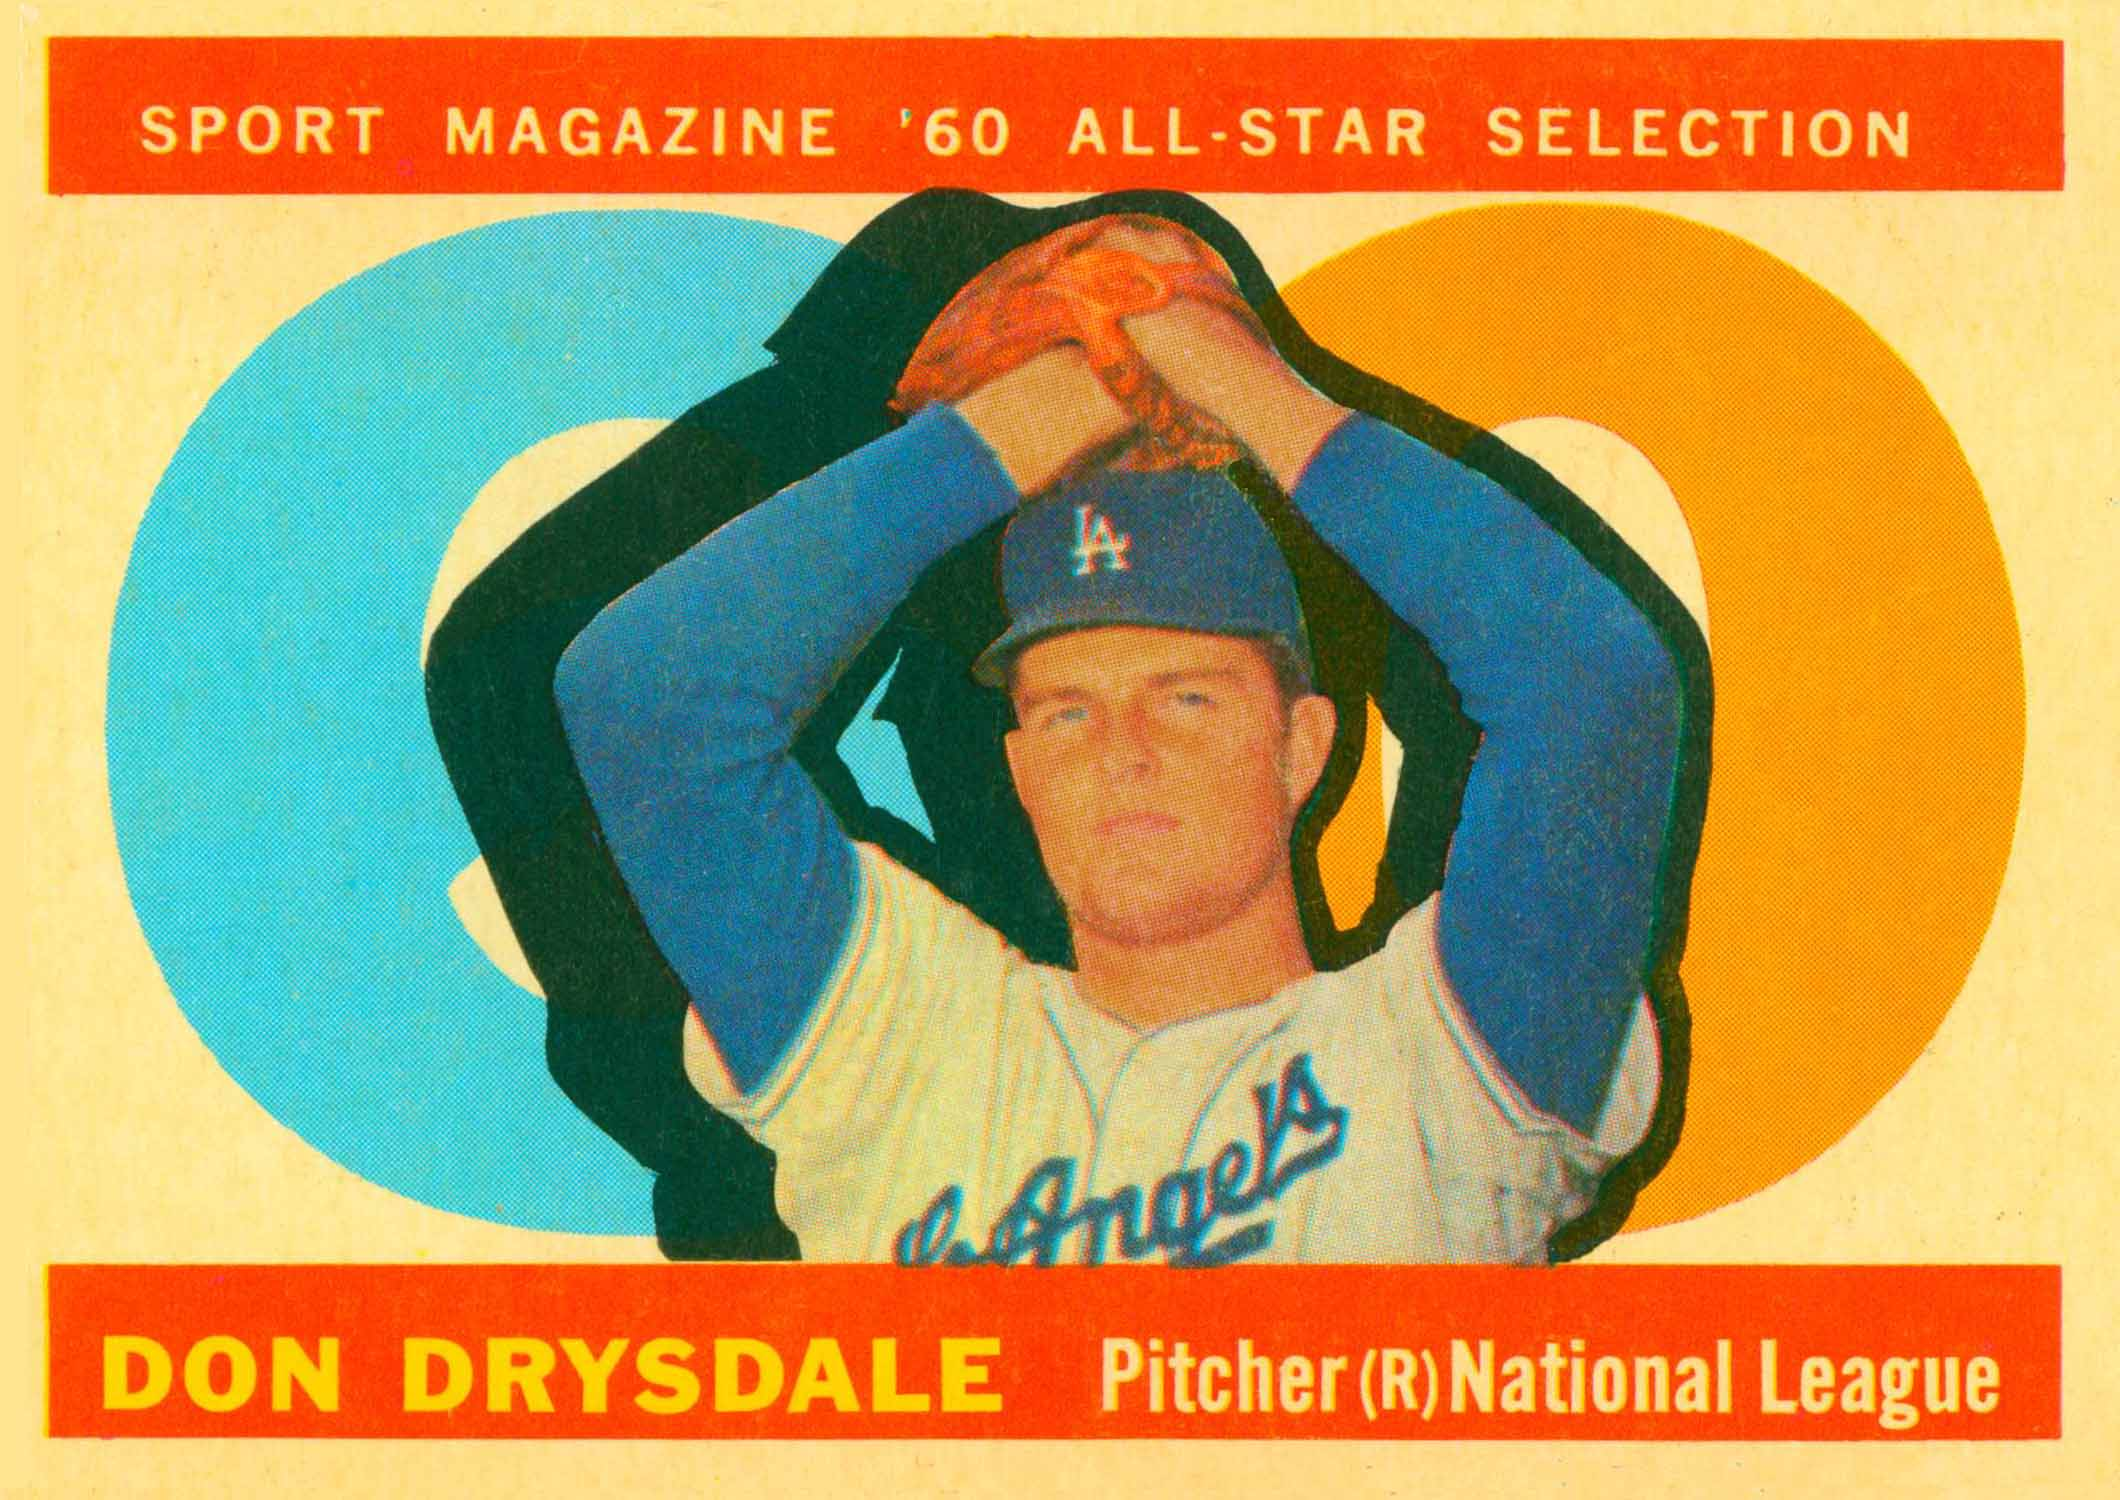 1960 Topps All-Star